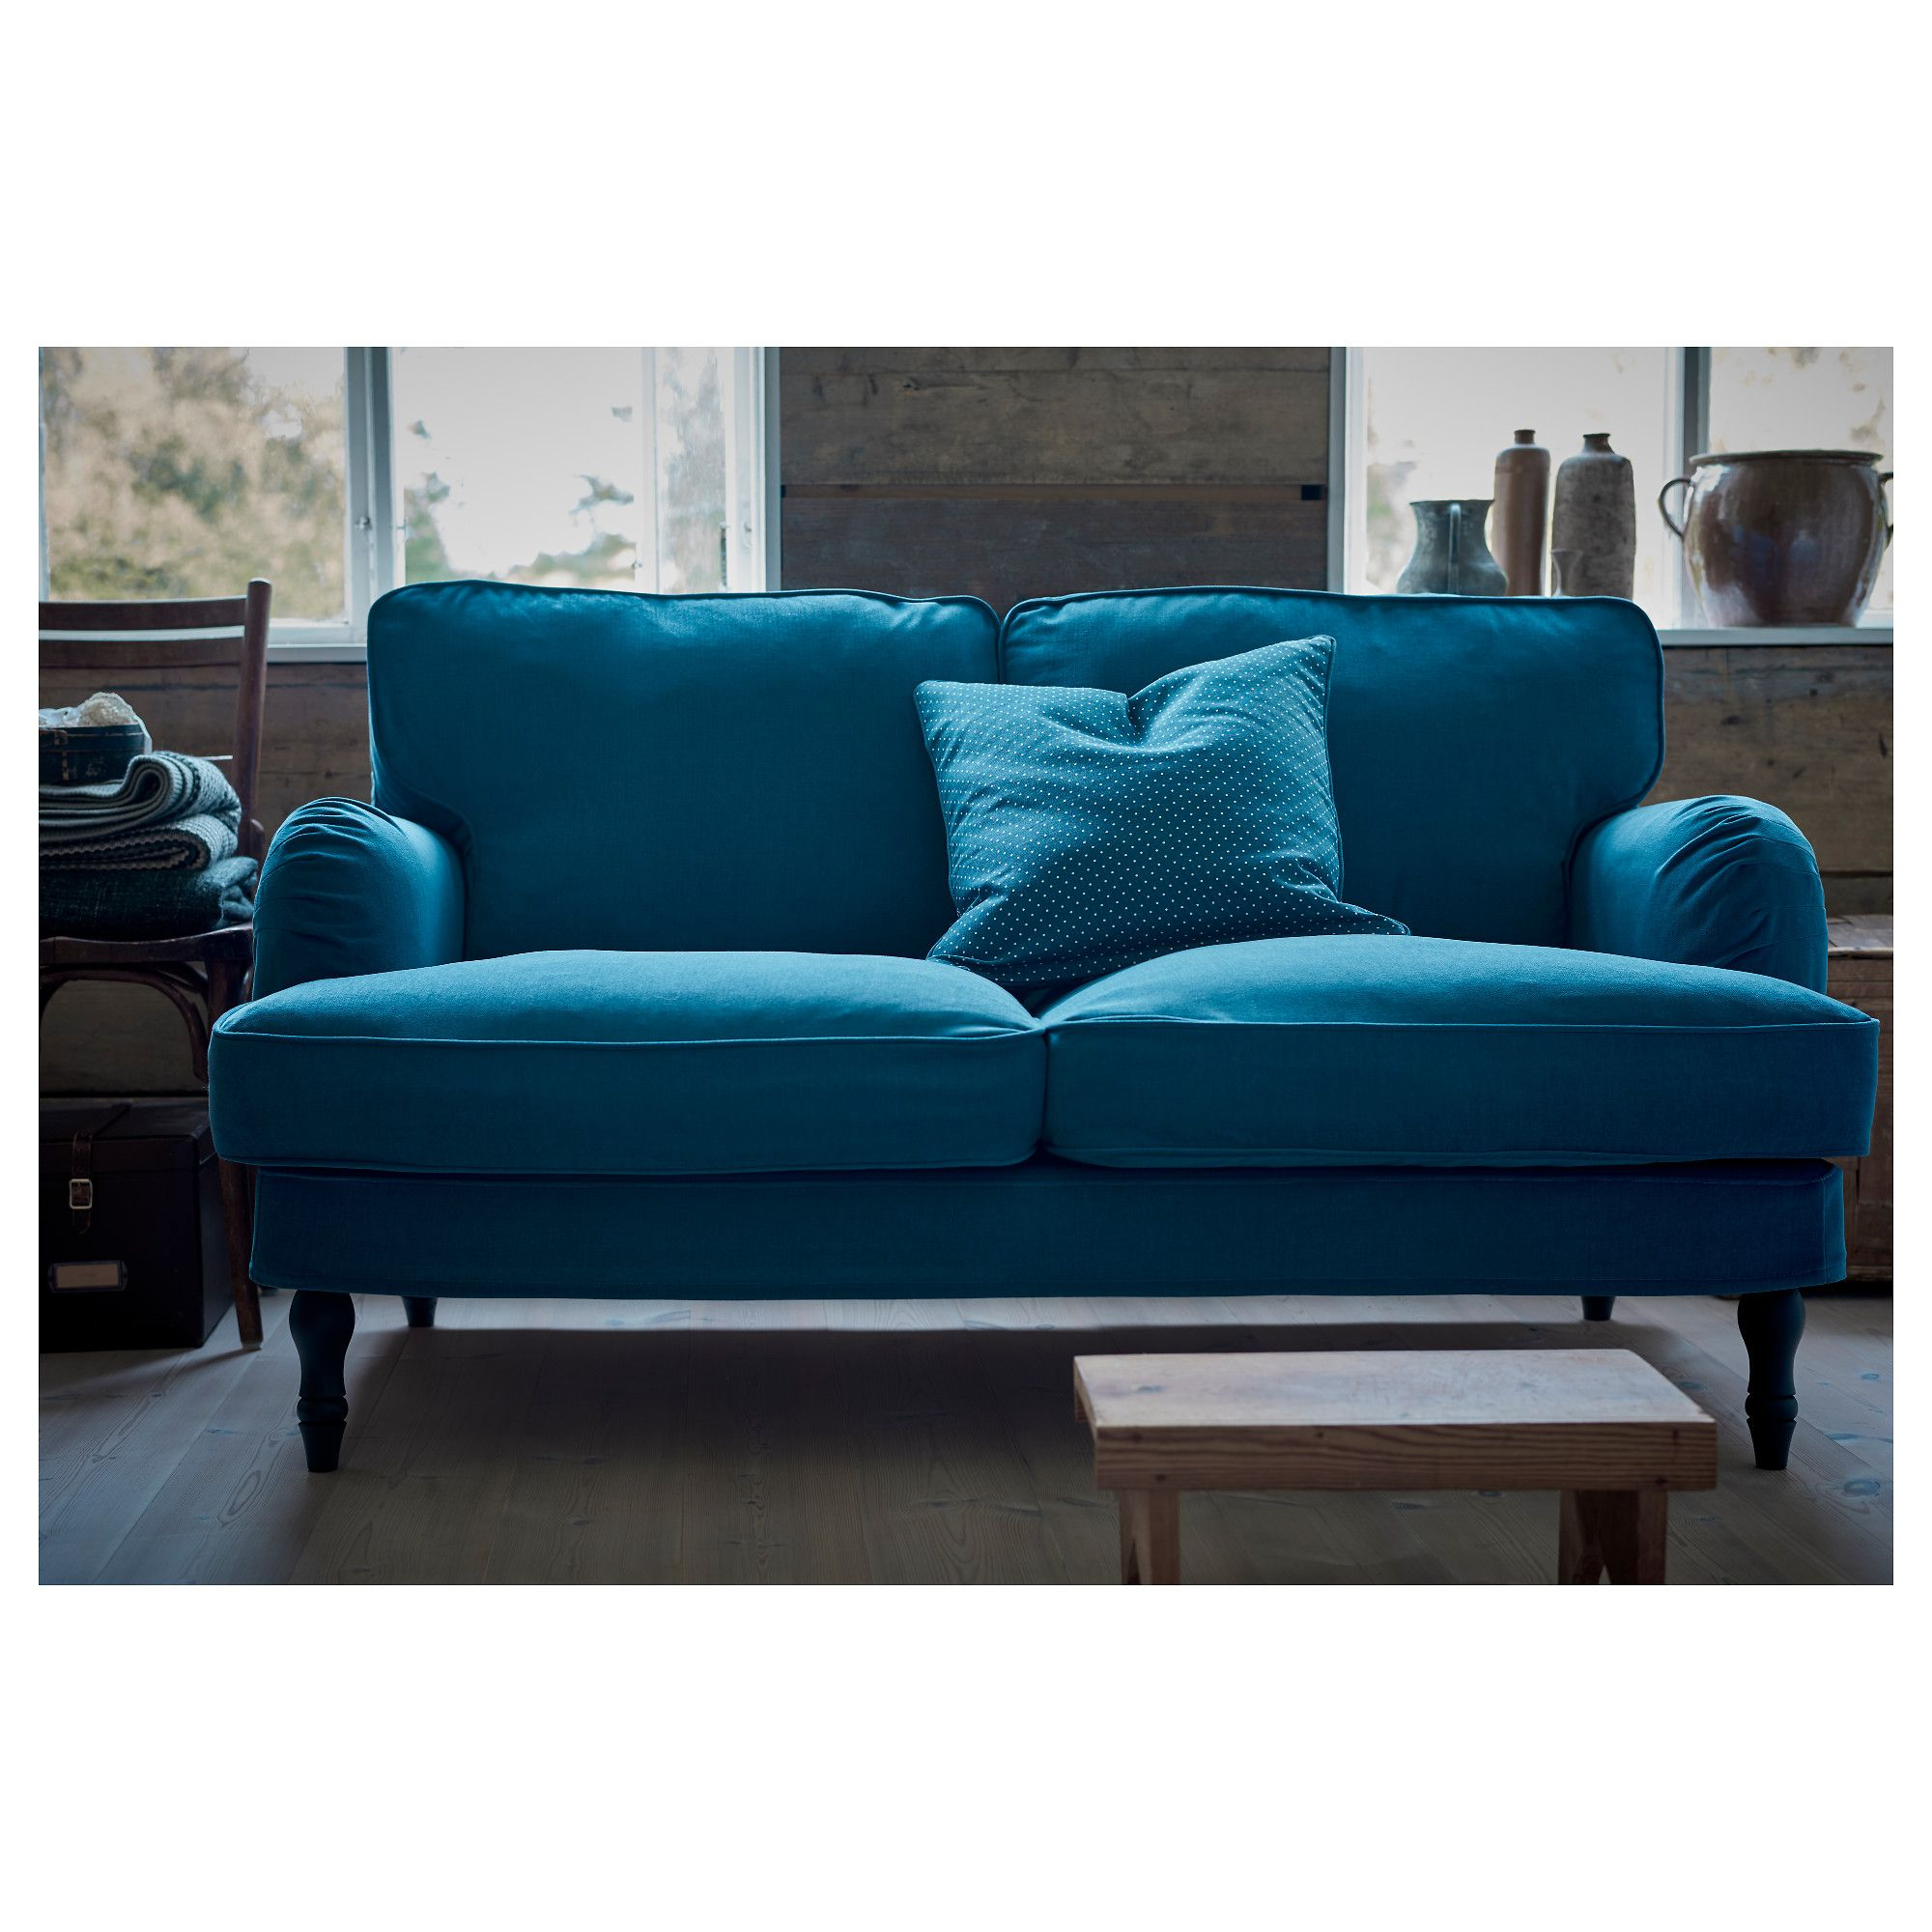 Bettsofa Ikea Blau Ikea Stocksund Sofa Ljungen Blue Black Wood Sarasota Living